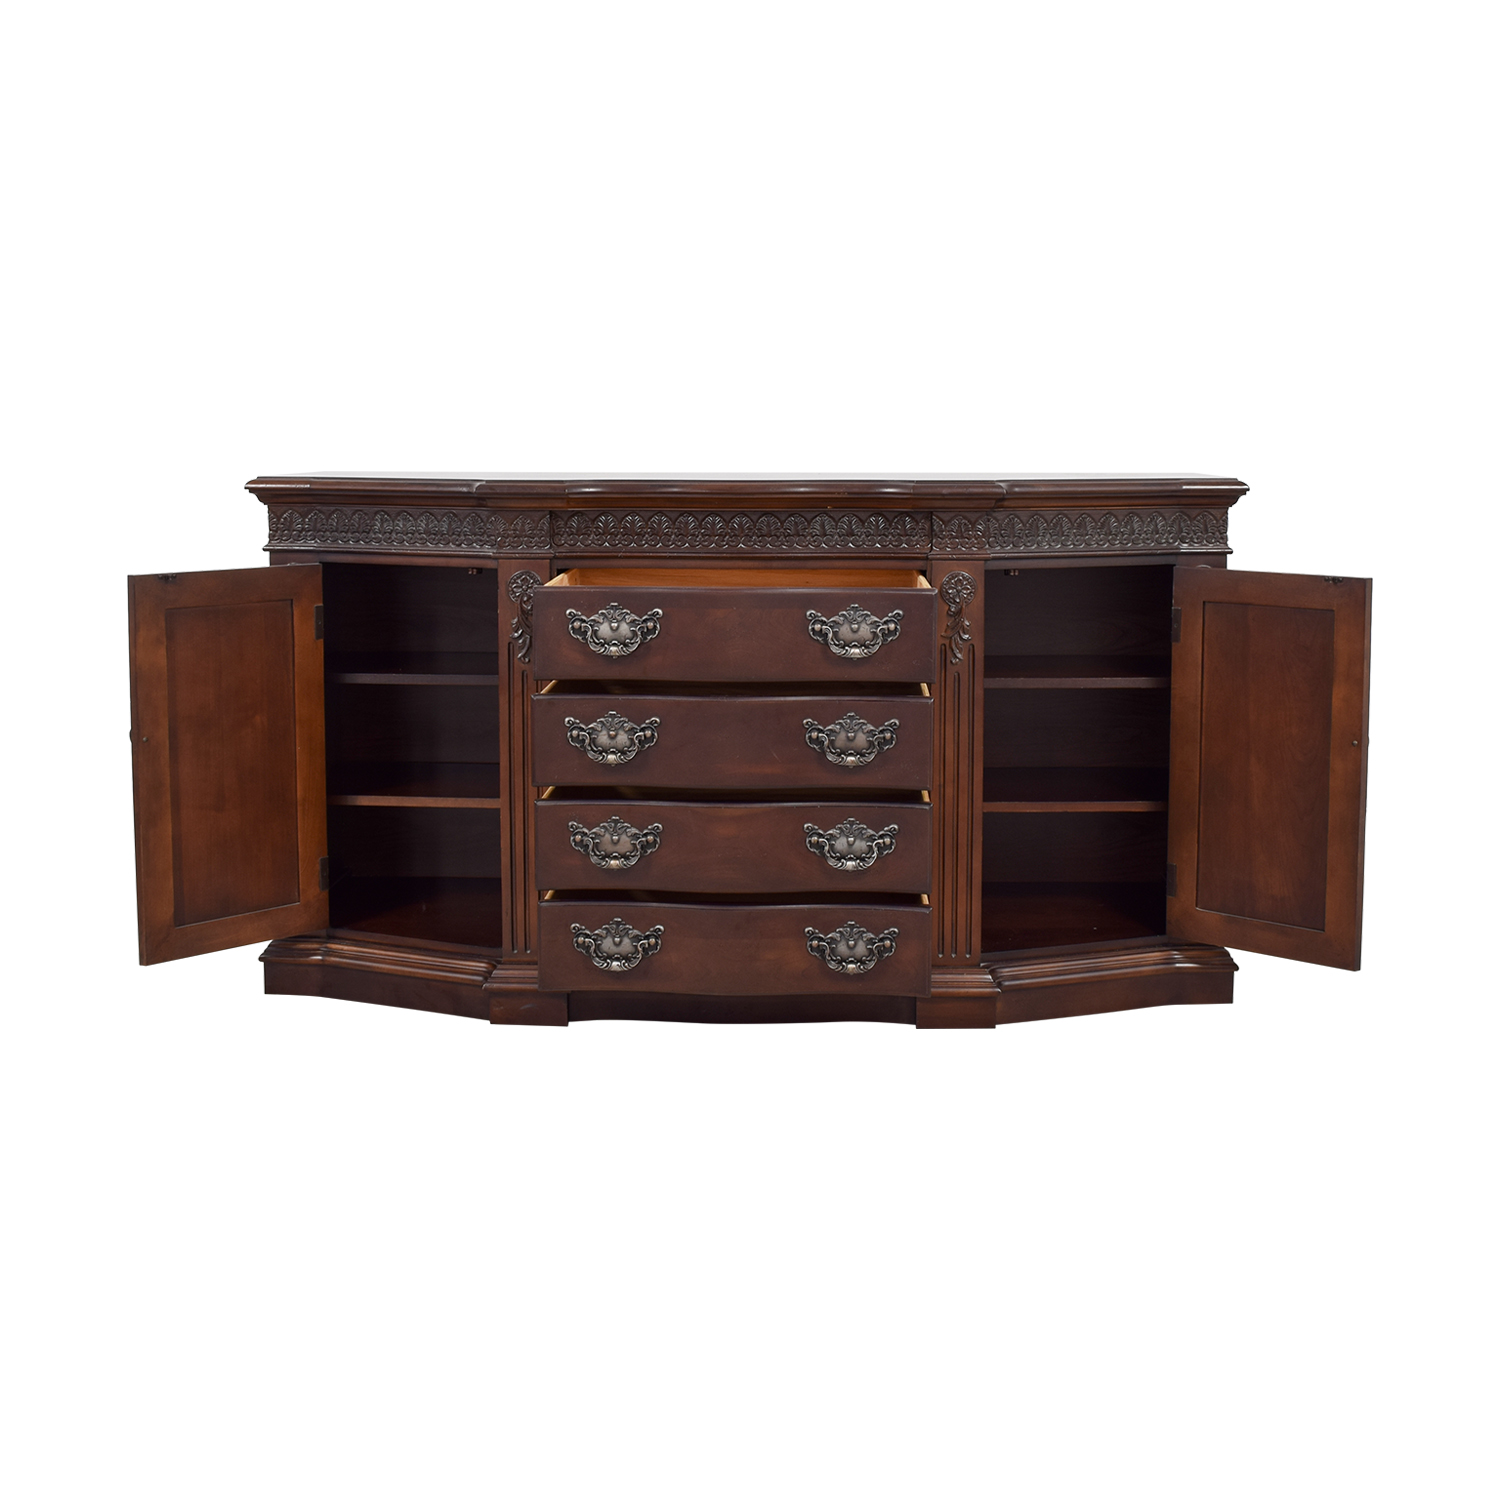 Bernhardt Bernhardt Four-Drawer Wood Buffet used